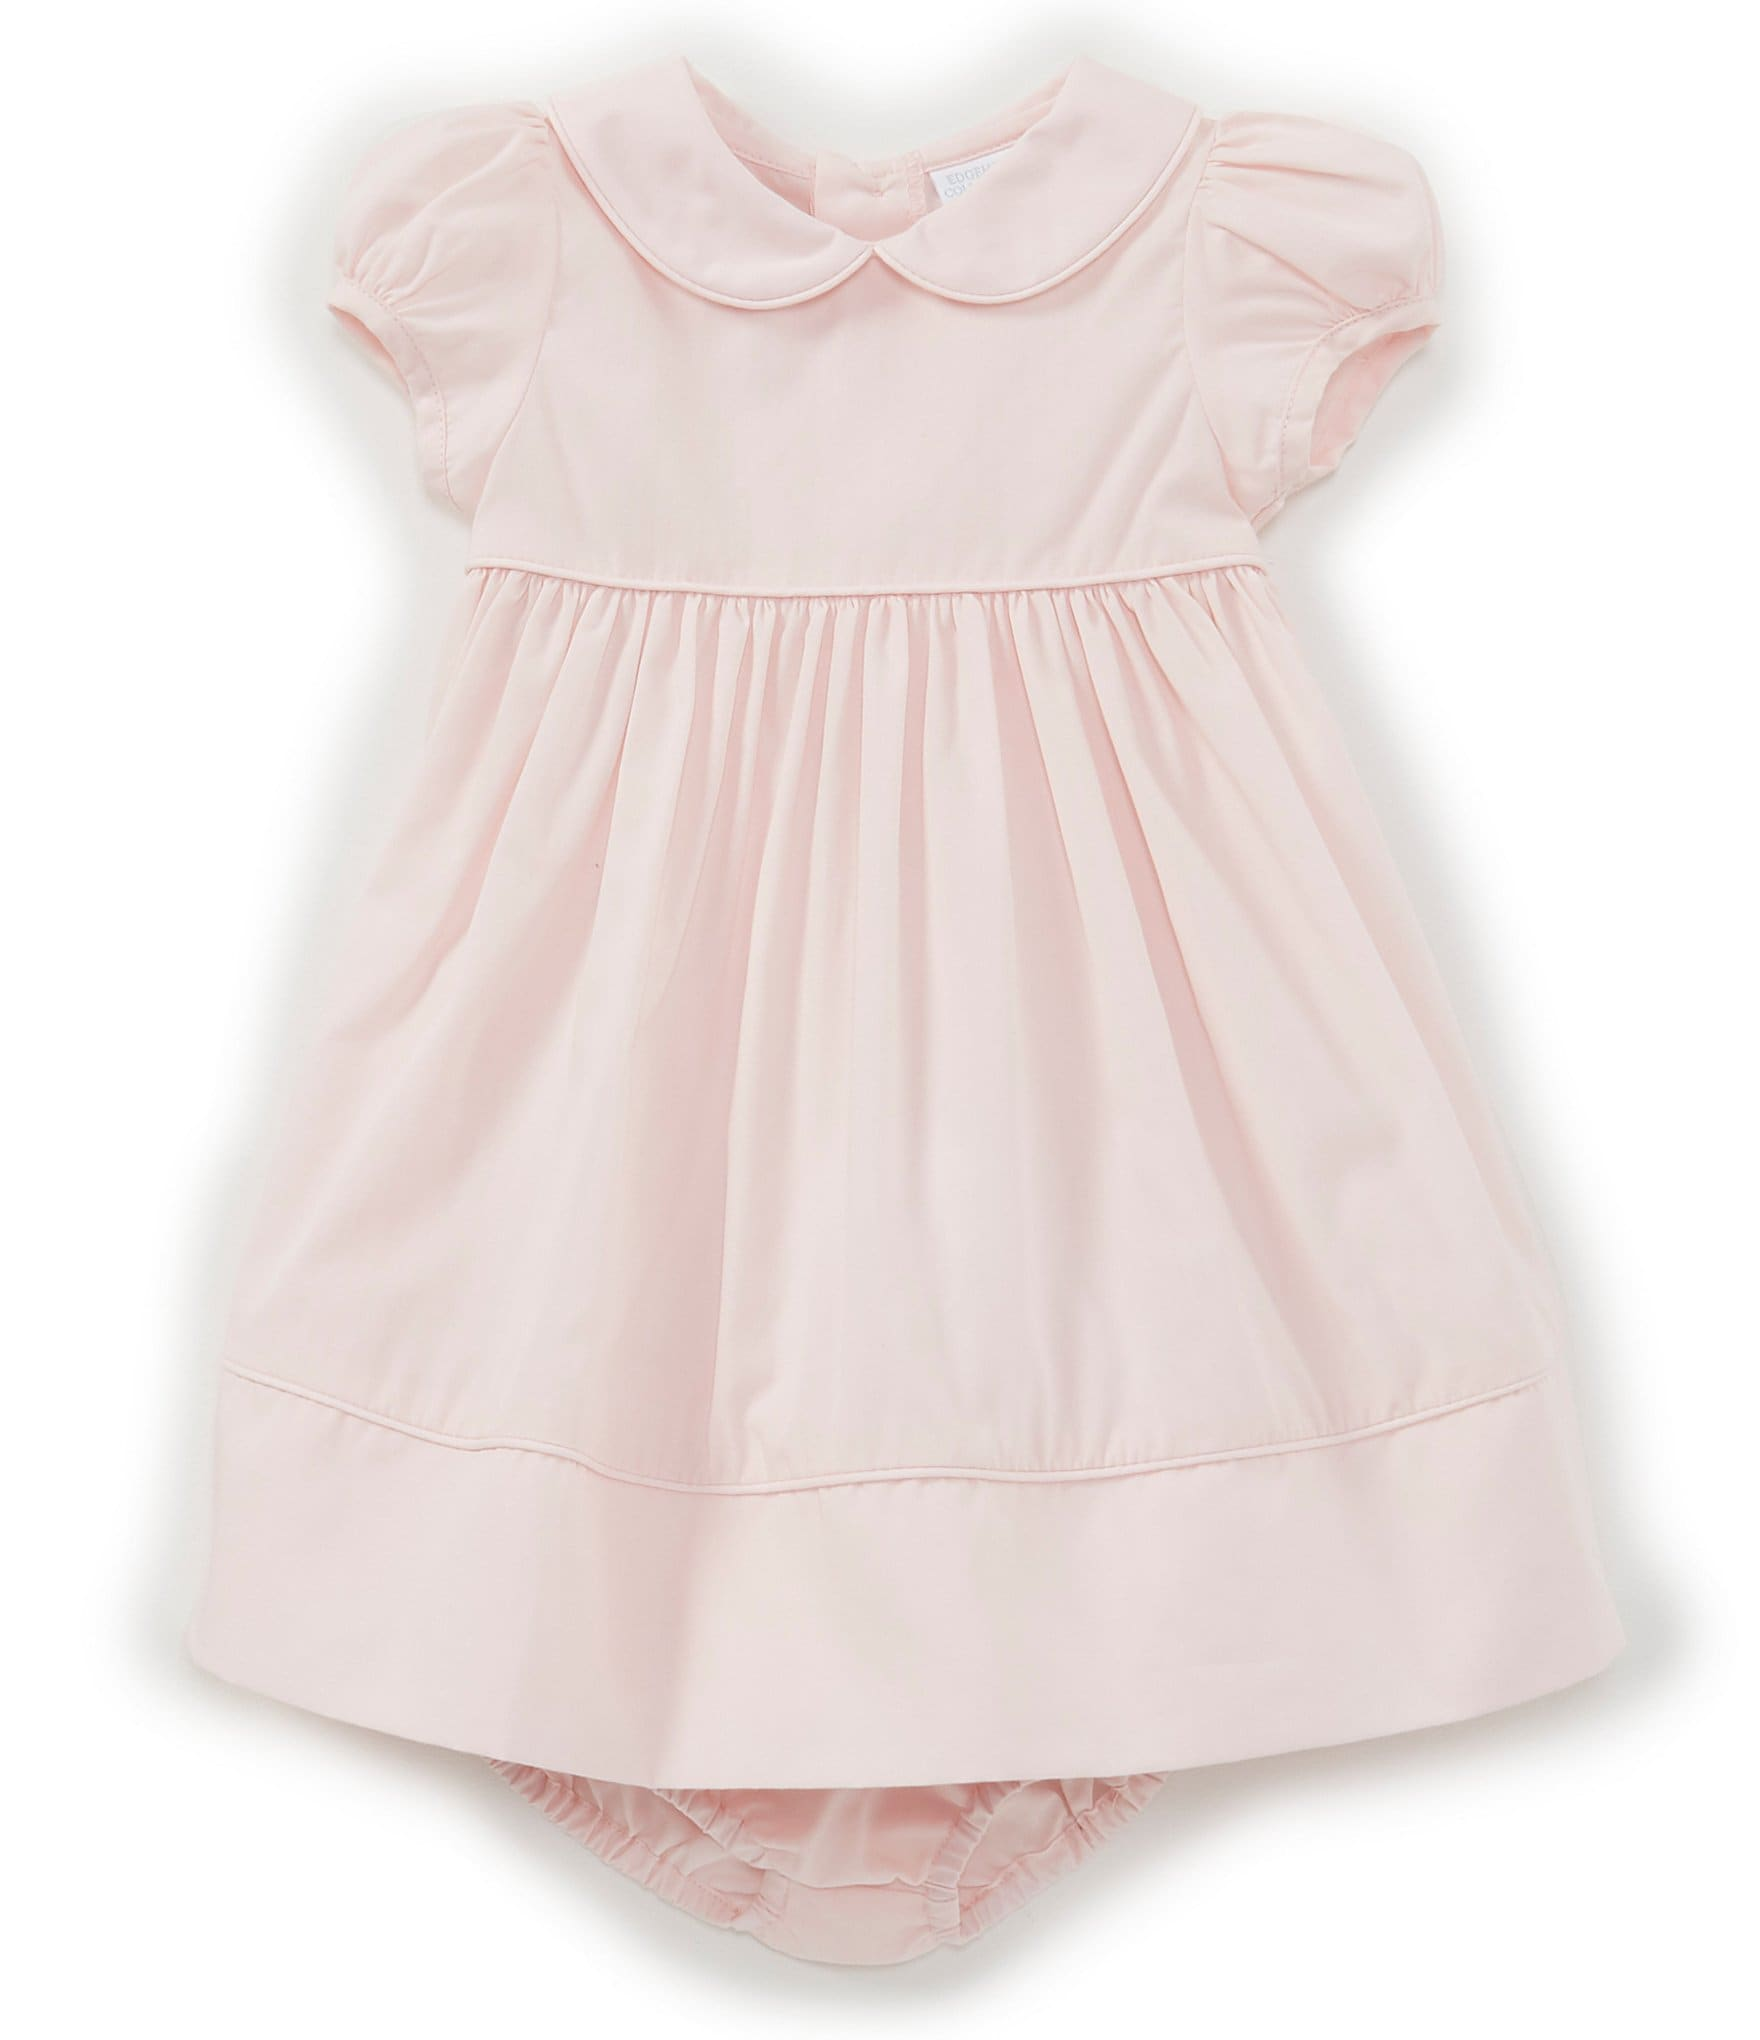 5015e0d163ee1 Edgehill Collection Baby Girls Newborn-24 Months Peter-Pan Collar Solid  A-Line Dress